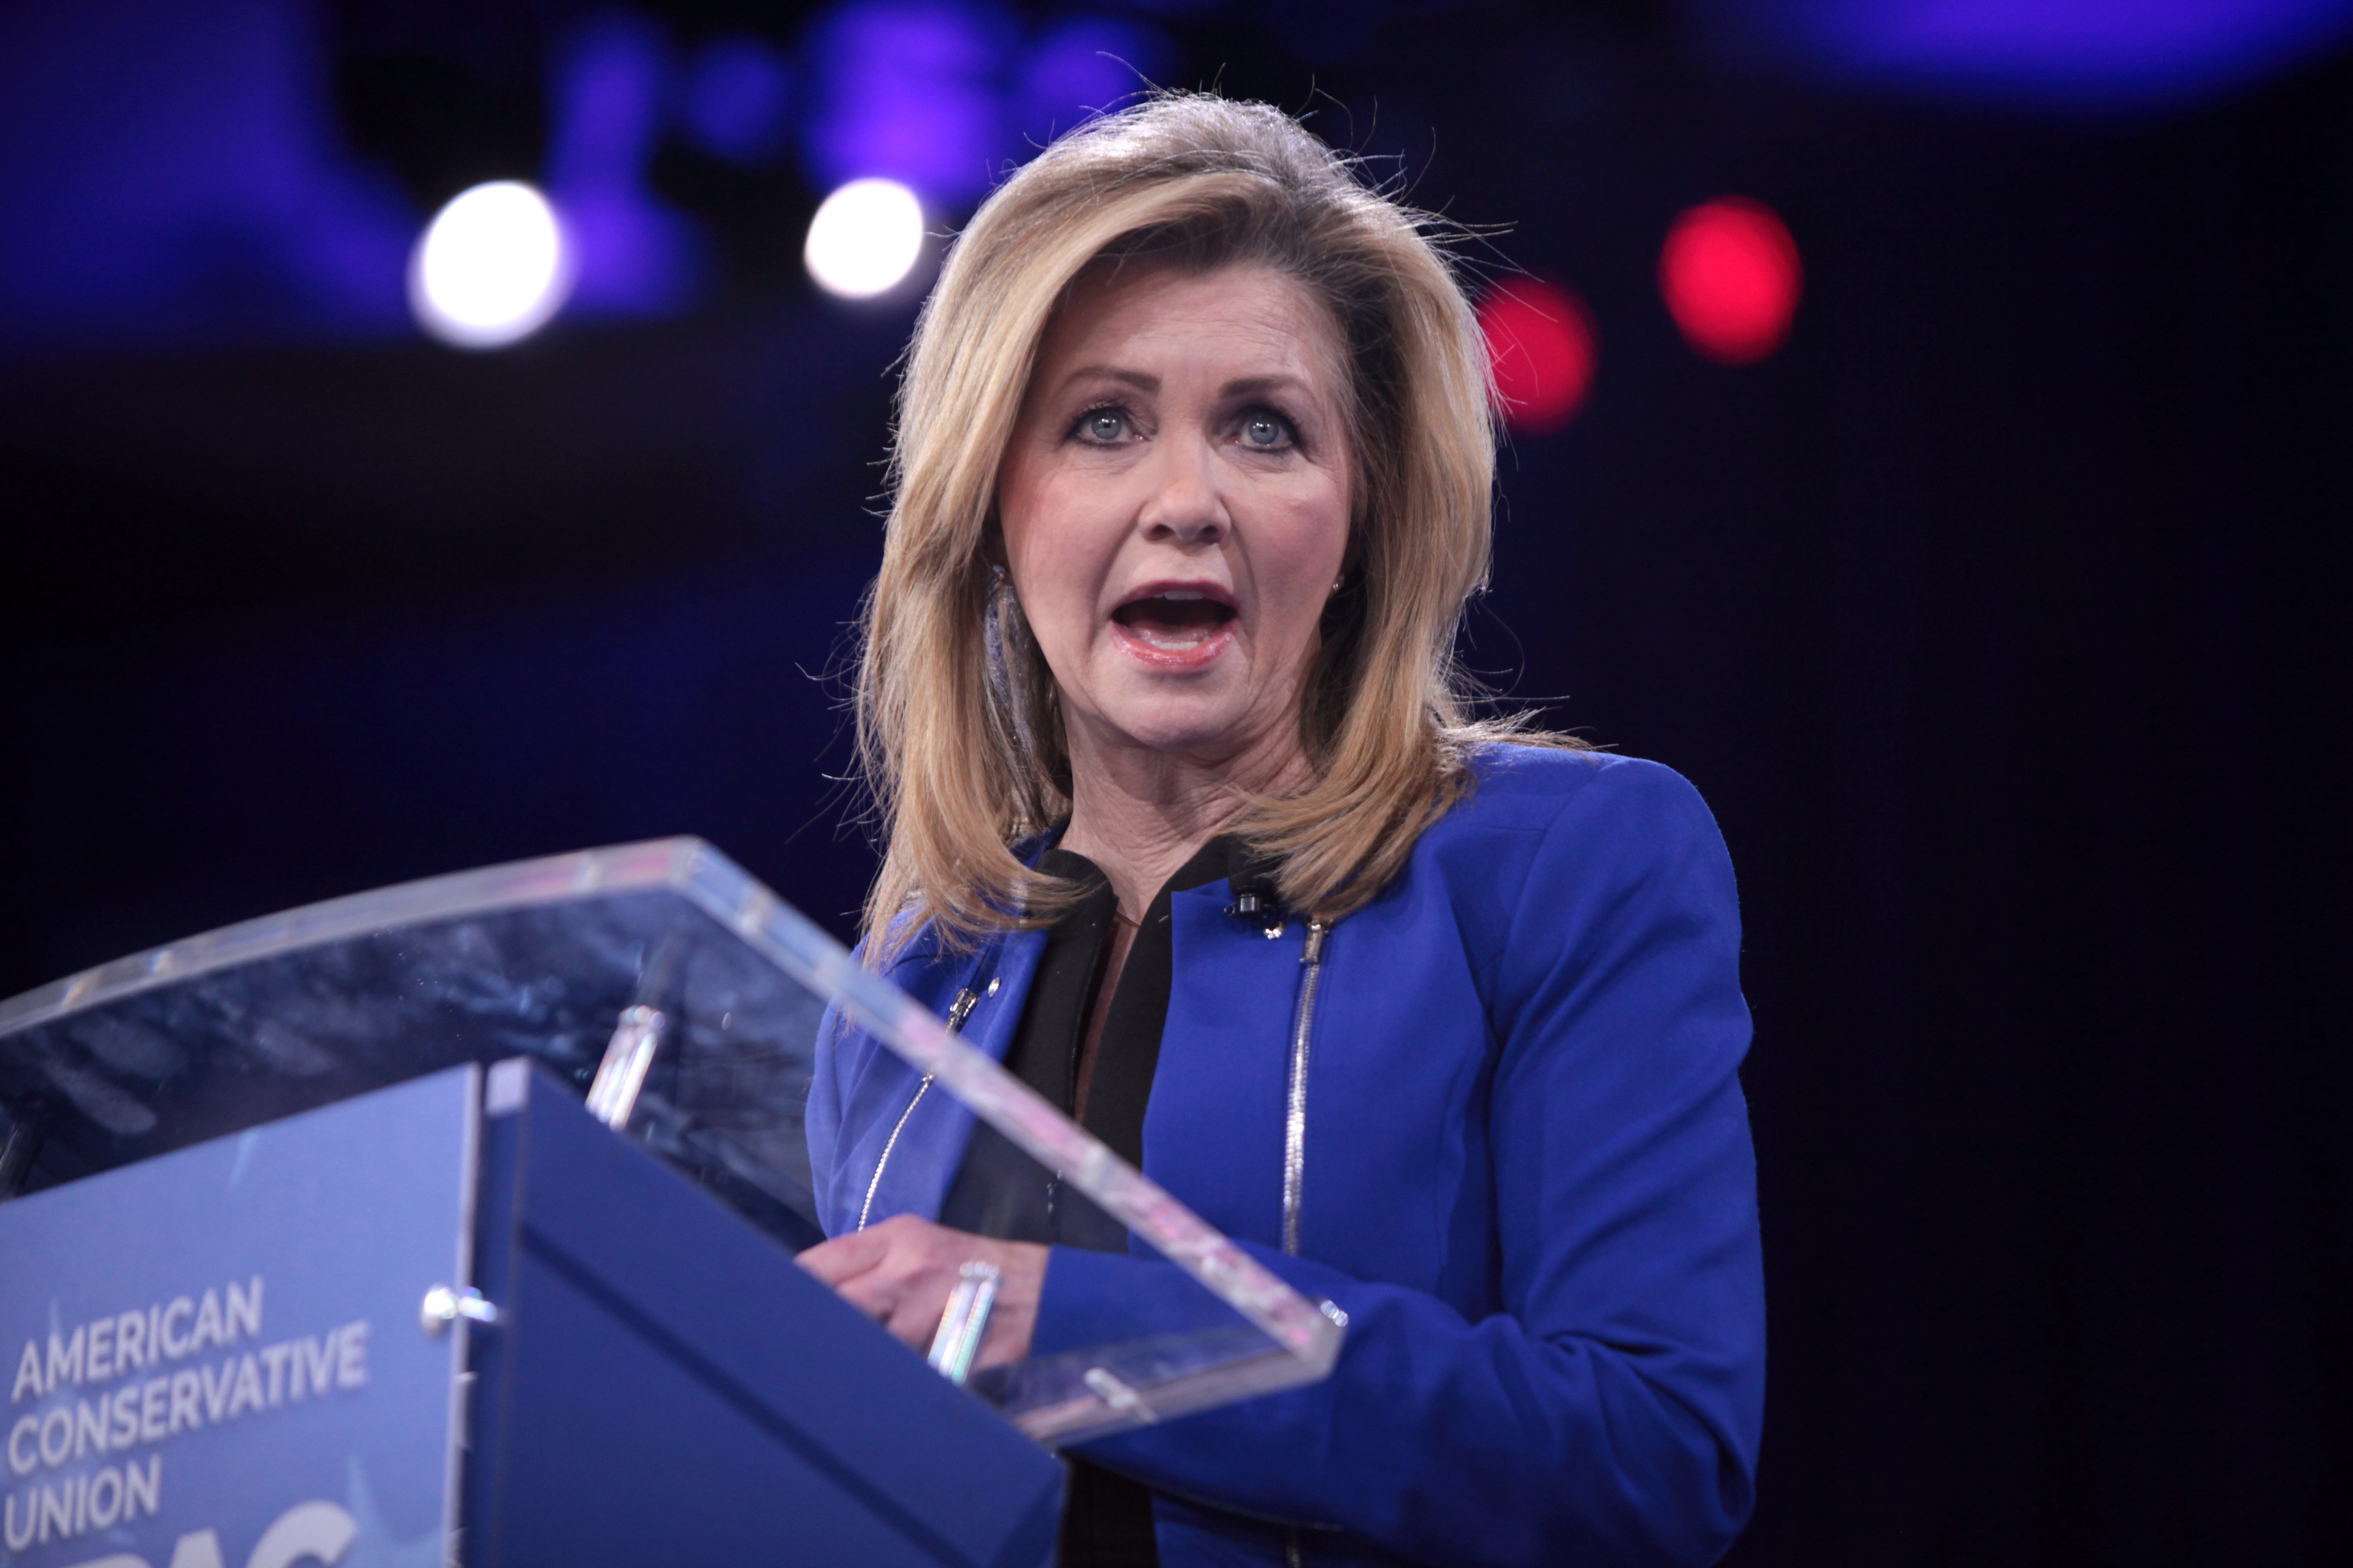 Senator Marsha Blackburn speaks at a podium at CPAC 2016.